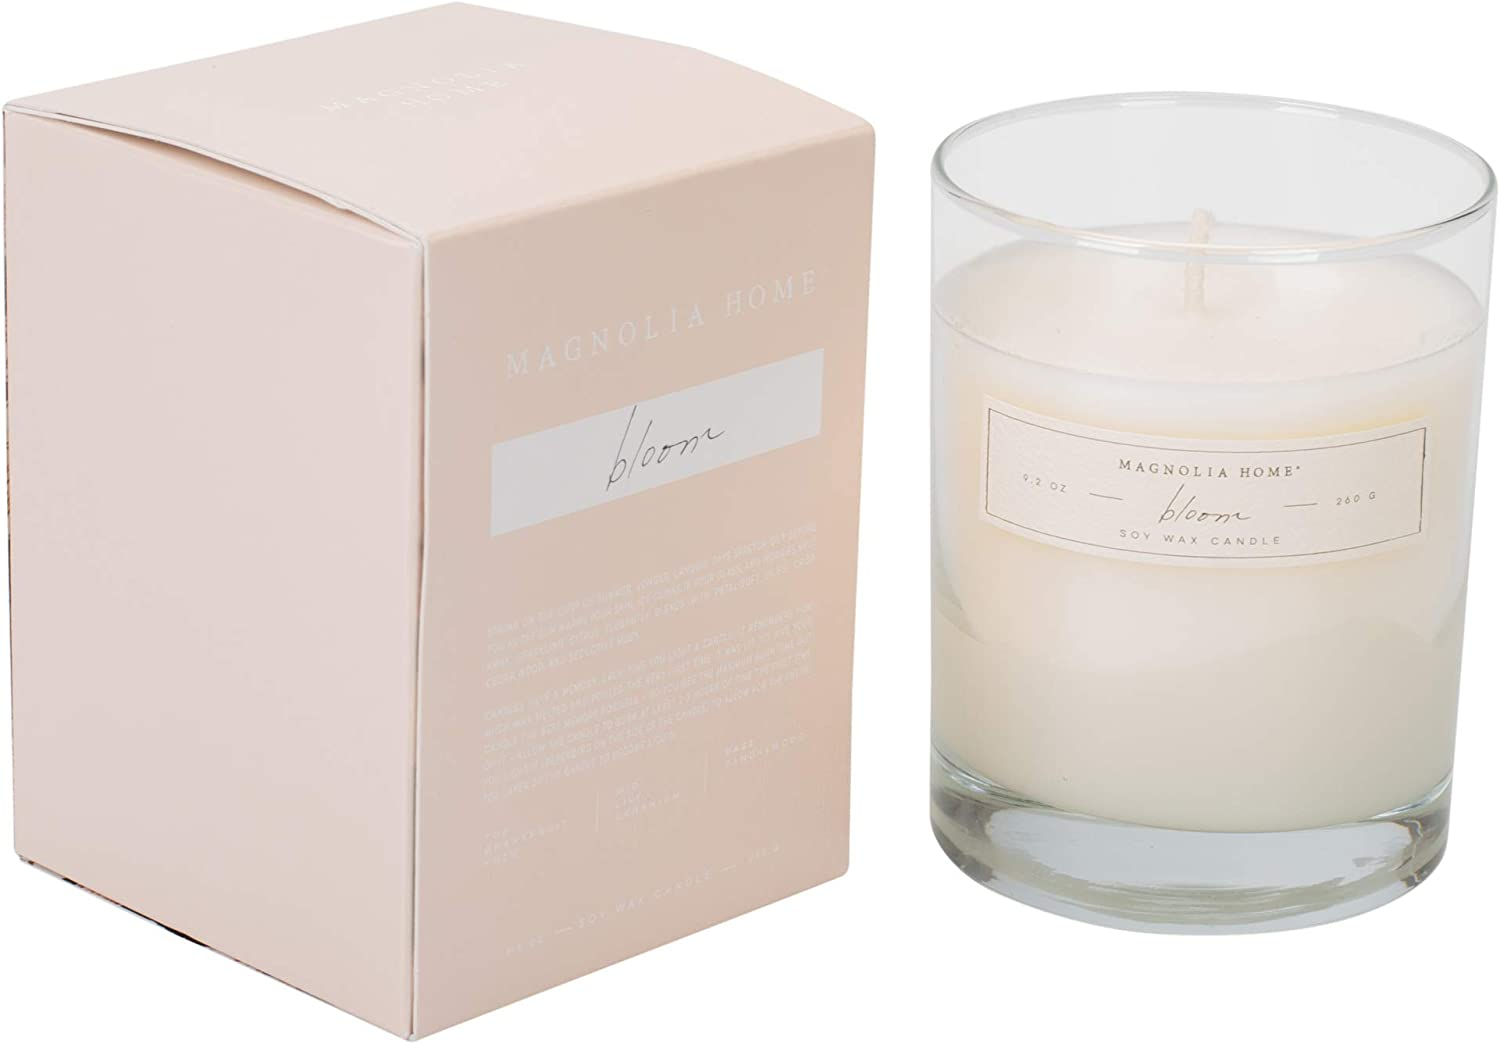 Magnolia Home Bloom Scented 9.2 oz Soy Wax Boxed Glass Candle by Joanna Gaines - Illume Pack of 2